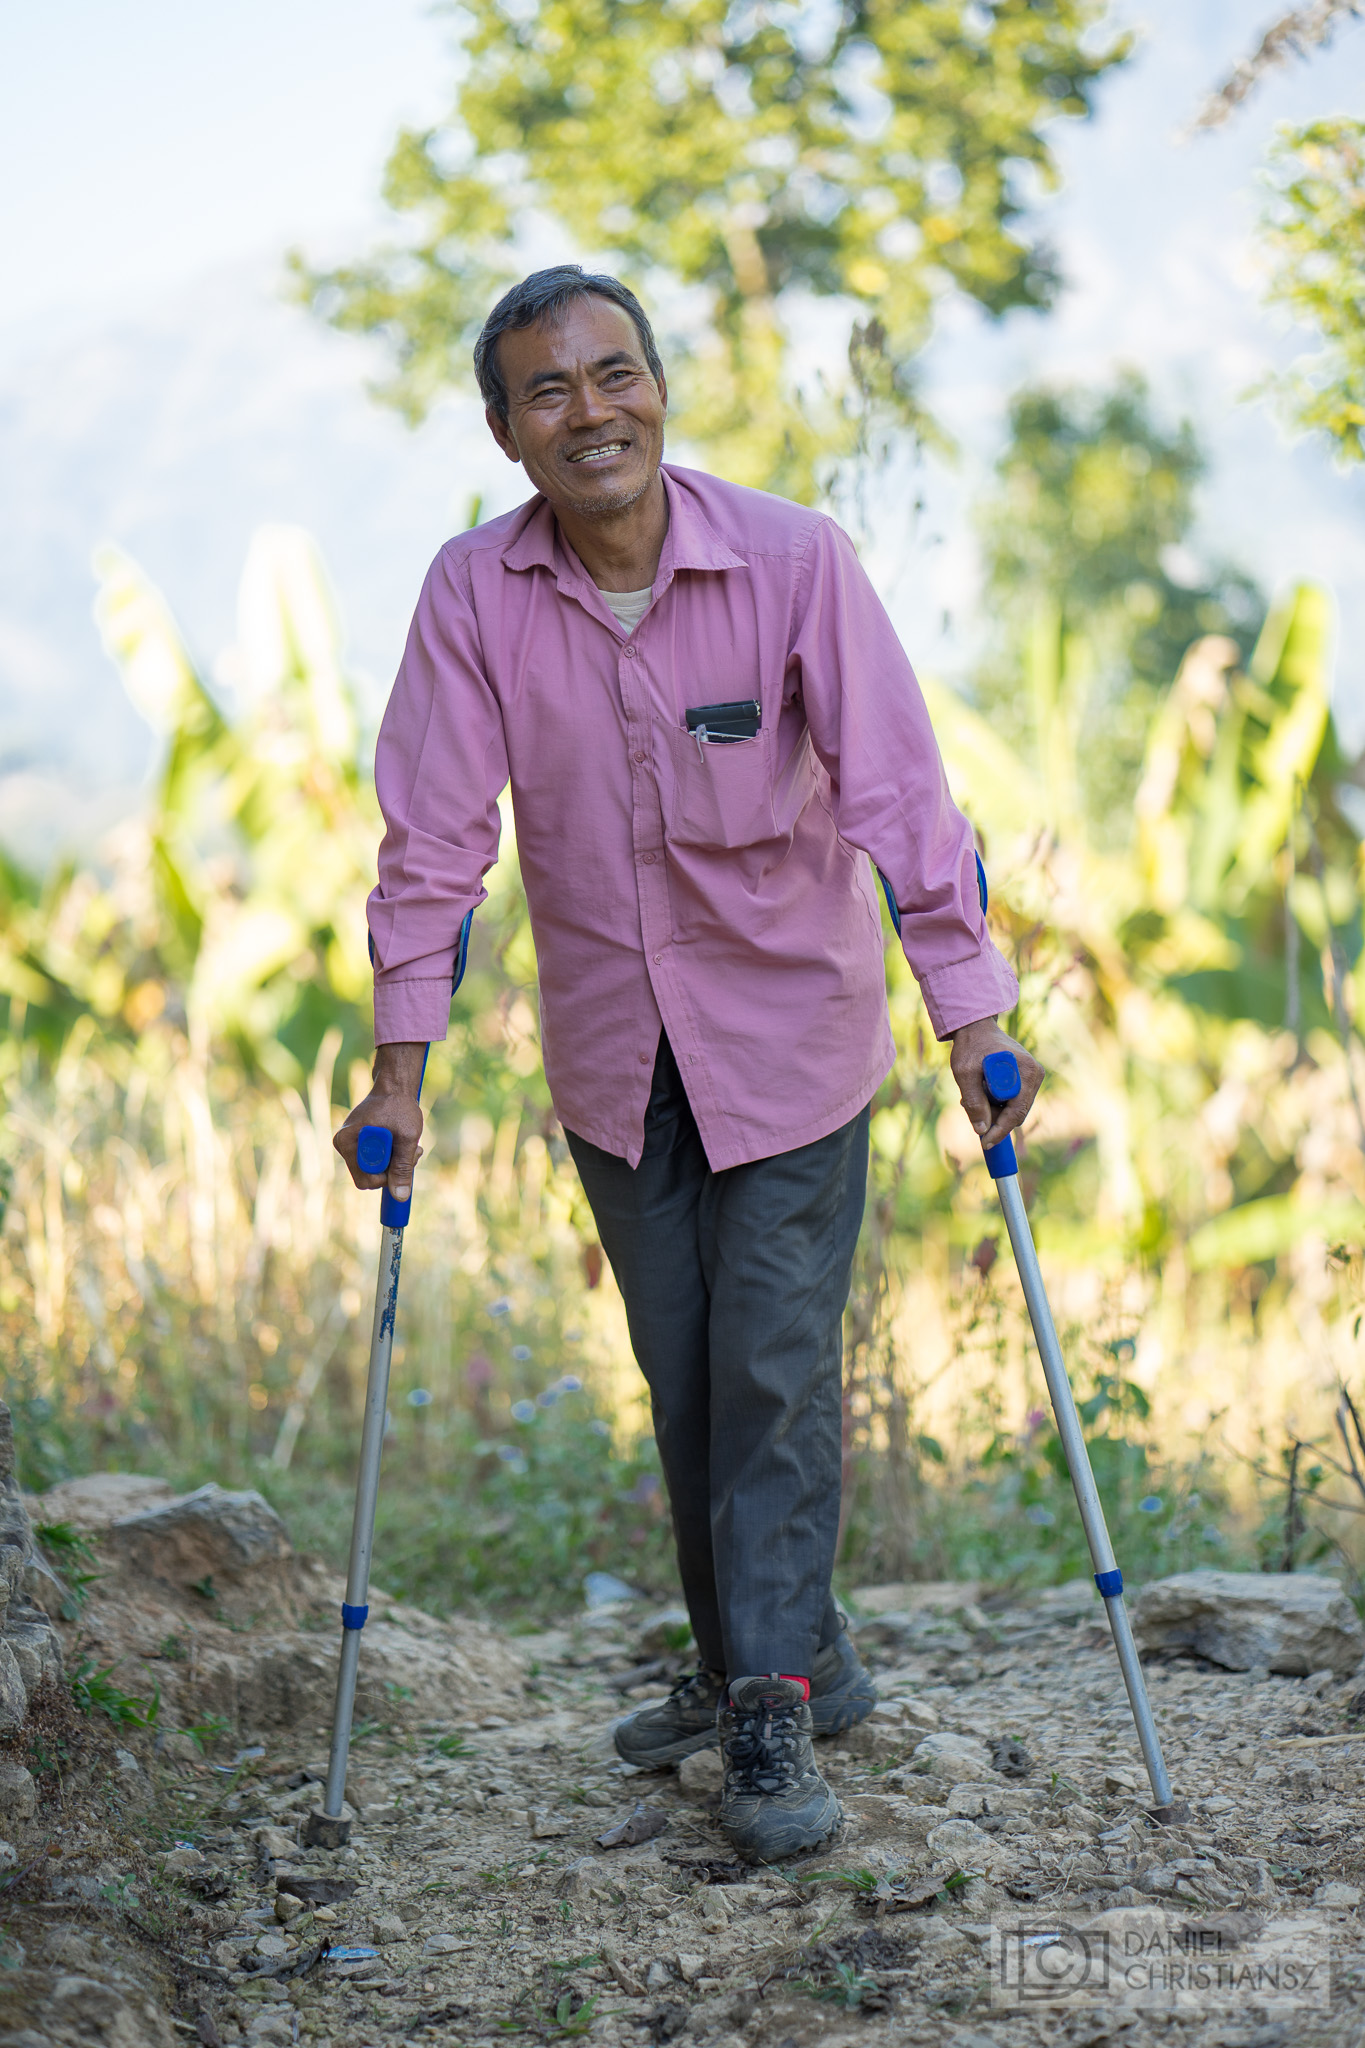 Nepal Man Disability Business Crutches